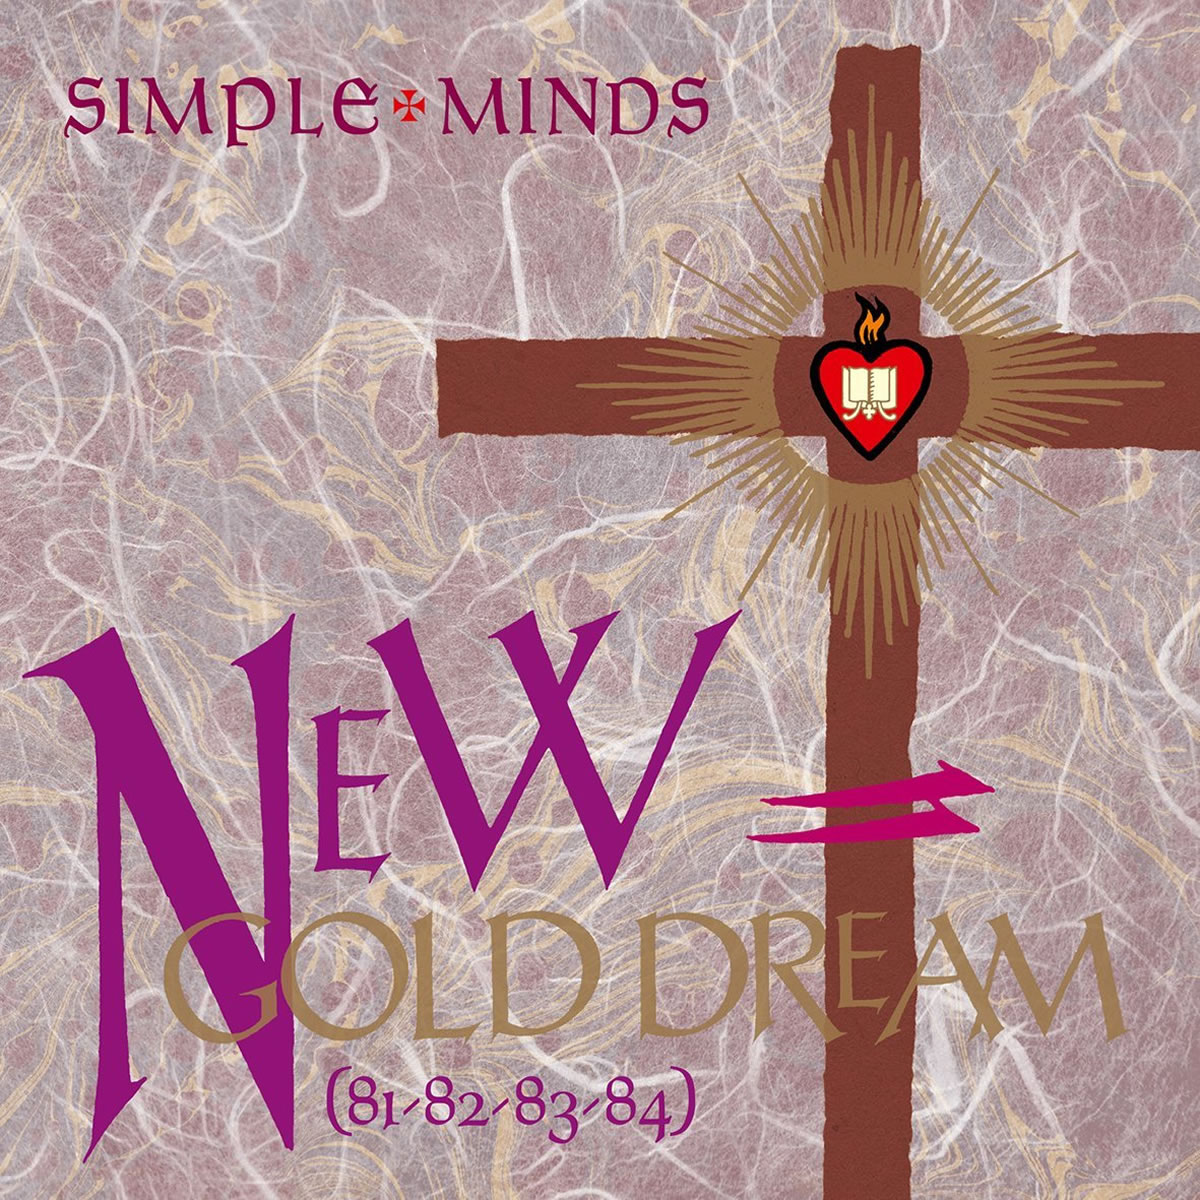 SIMPLE MINDS: NEW GOLD TEAM 81/82/83/84 (BLU-RAY)